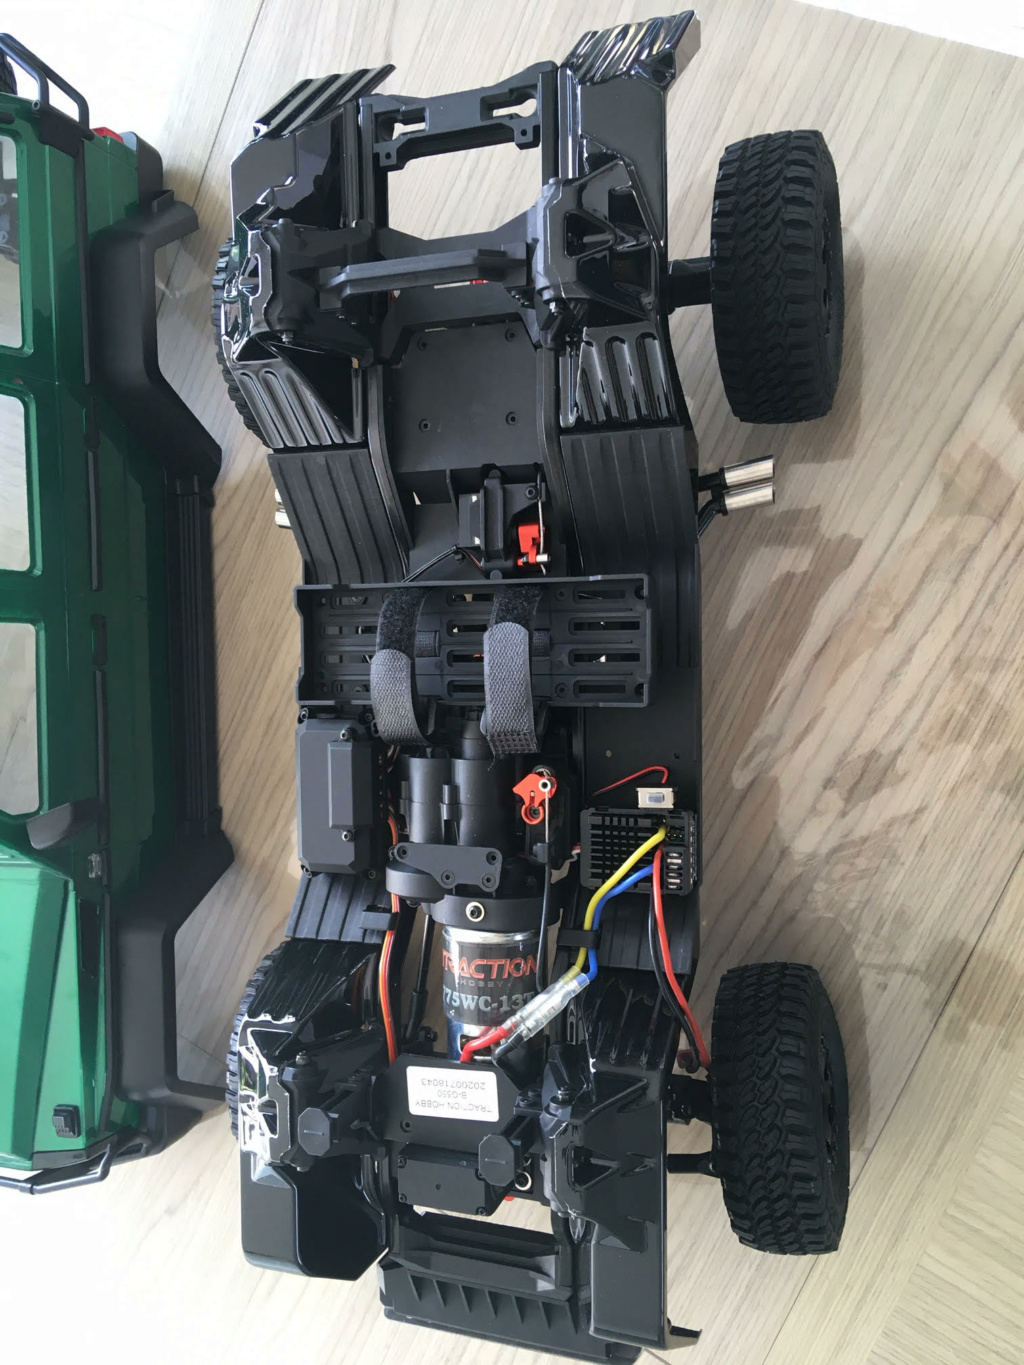 Traction Hobby B-G550 4x4 vers G63 6x6 Unname14